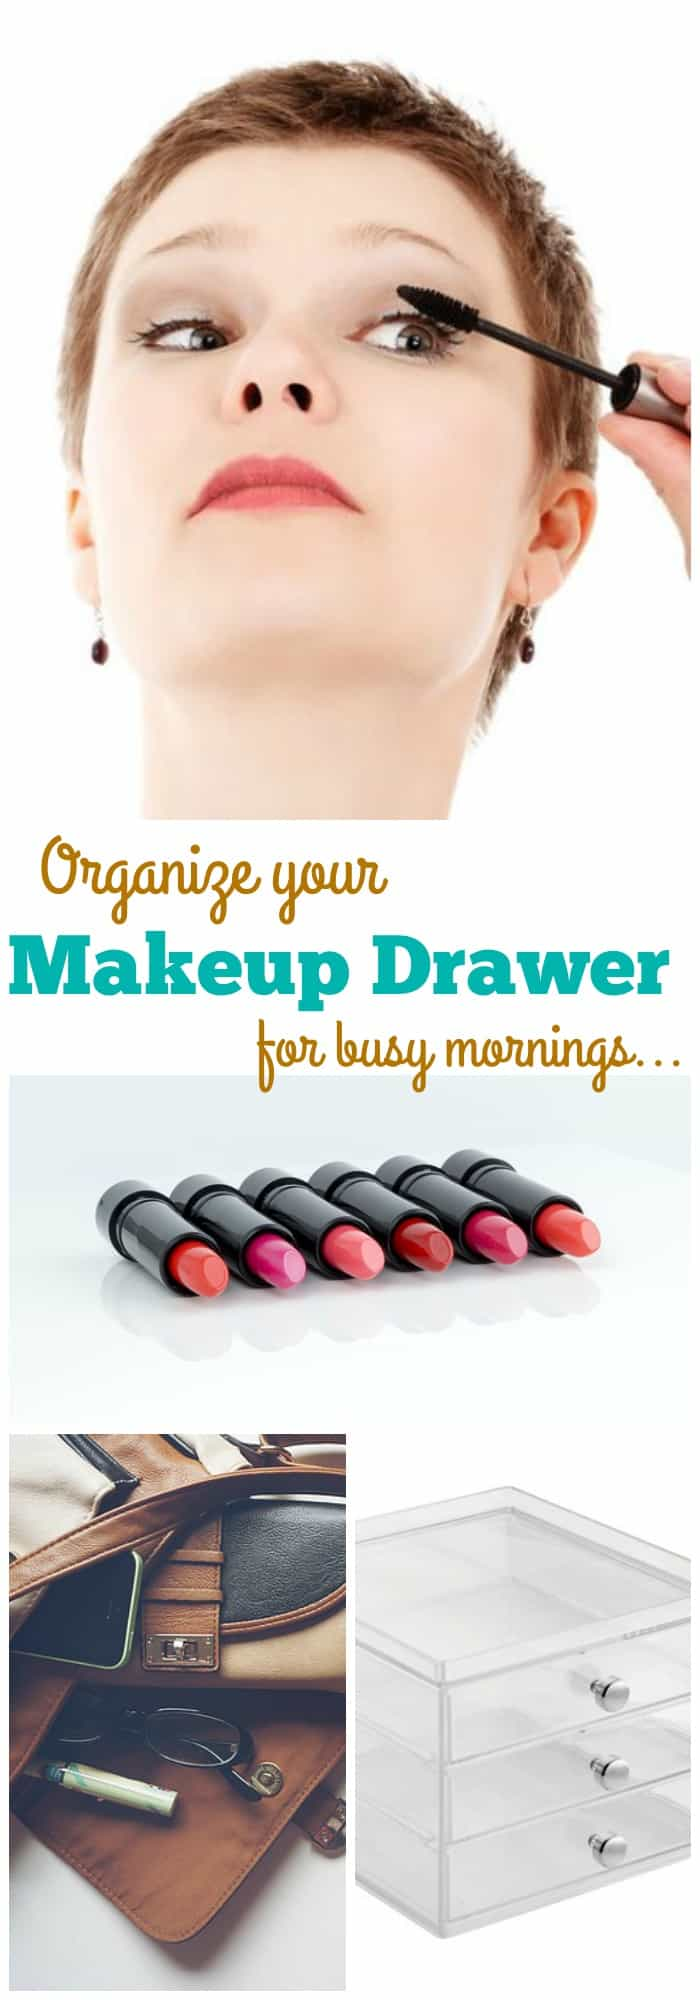 5 Ways to Organize Your Makeup Drawer and Cut Down on Your Morning Routine